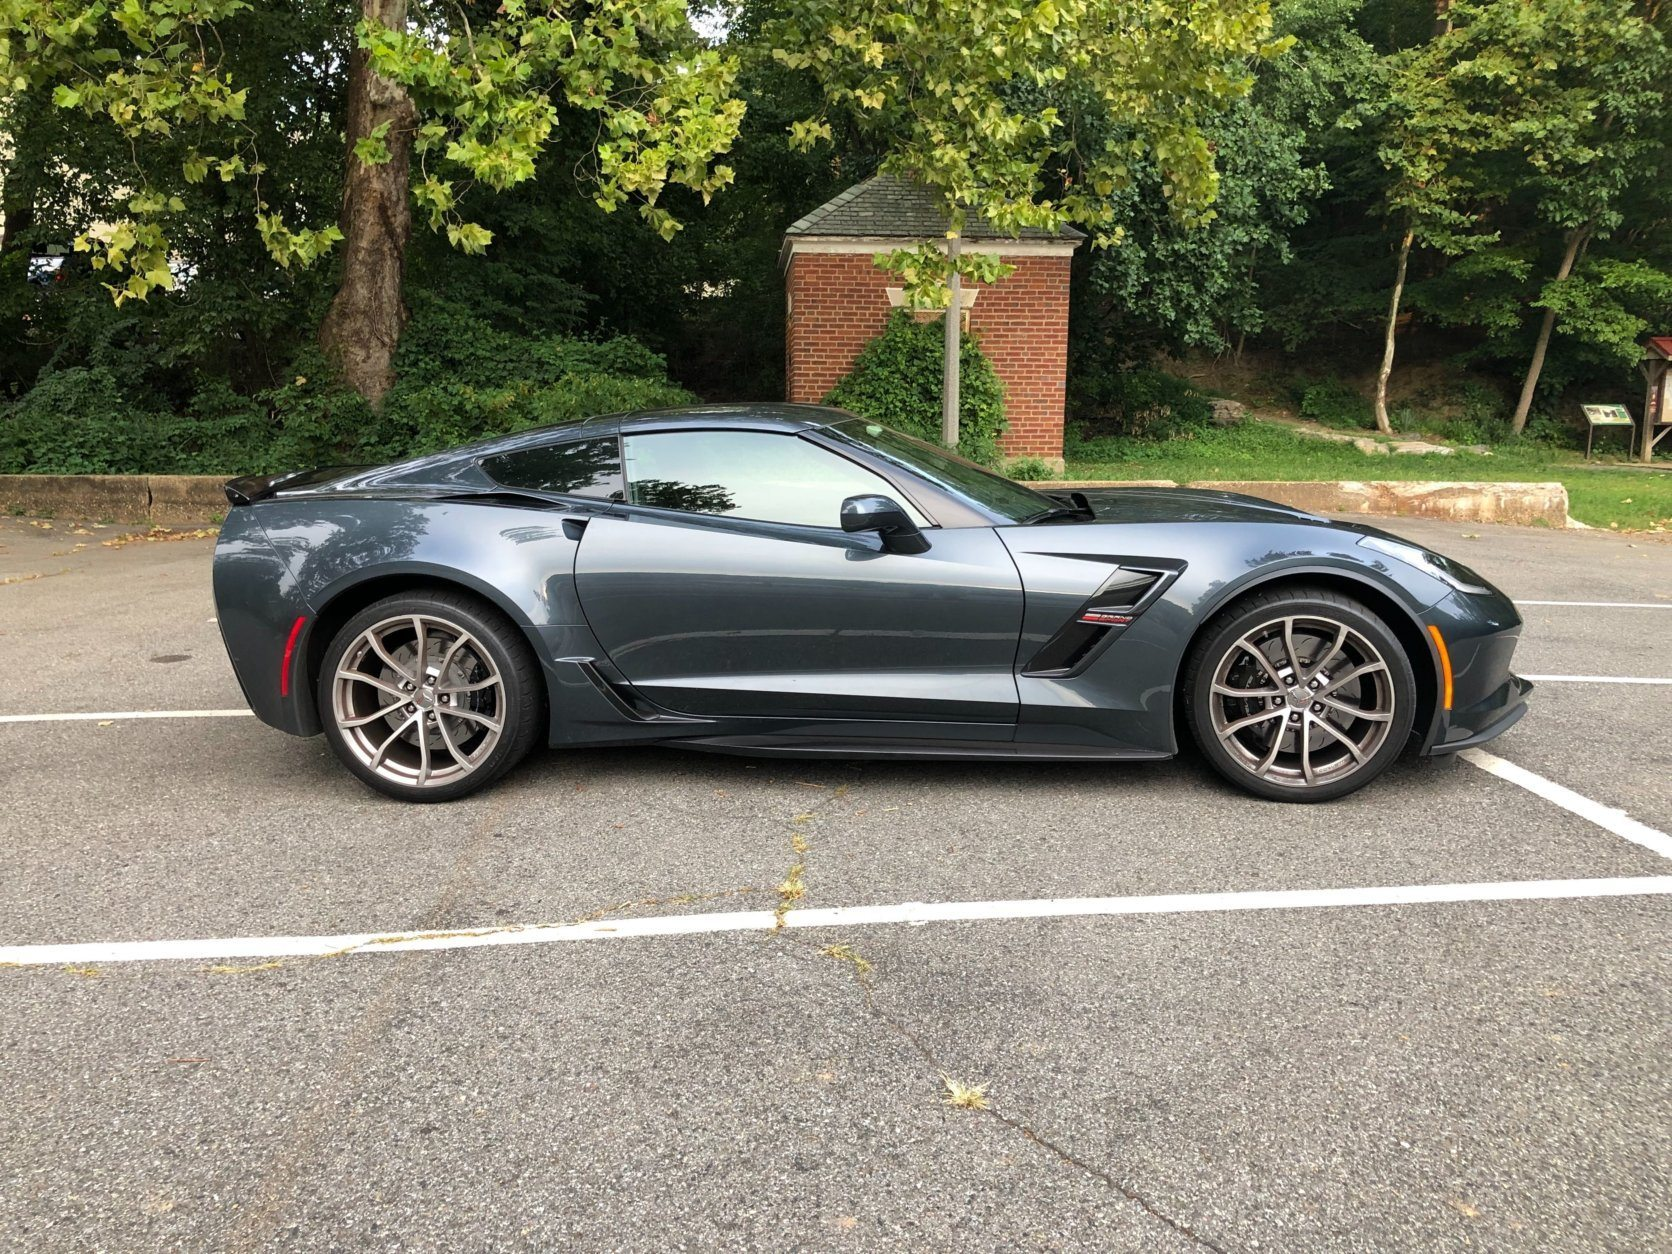 <p>The Corvette has always been a front engine and rear wheel drive.</p> <p>In 2020, the biggest change happens when the Vette goes mid-engine and at a much lower price than the exotics.</p>